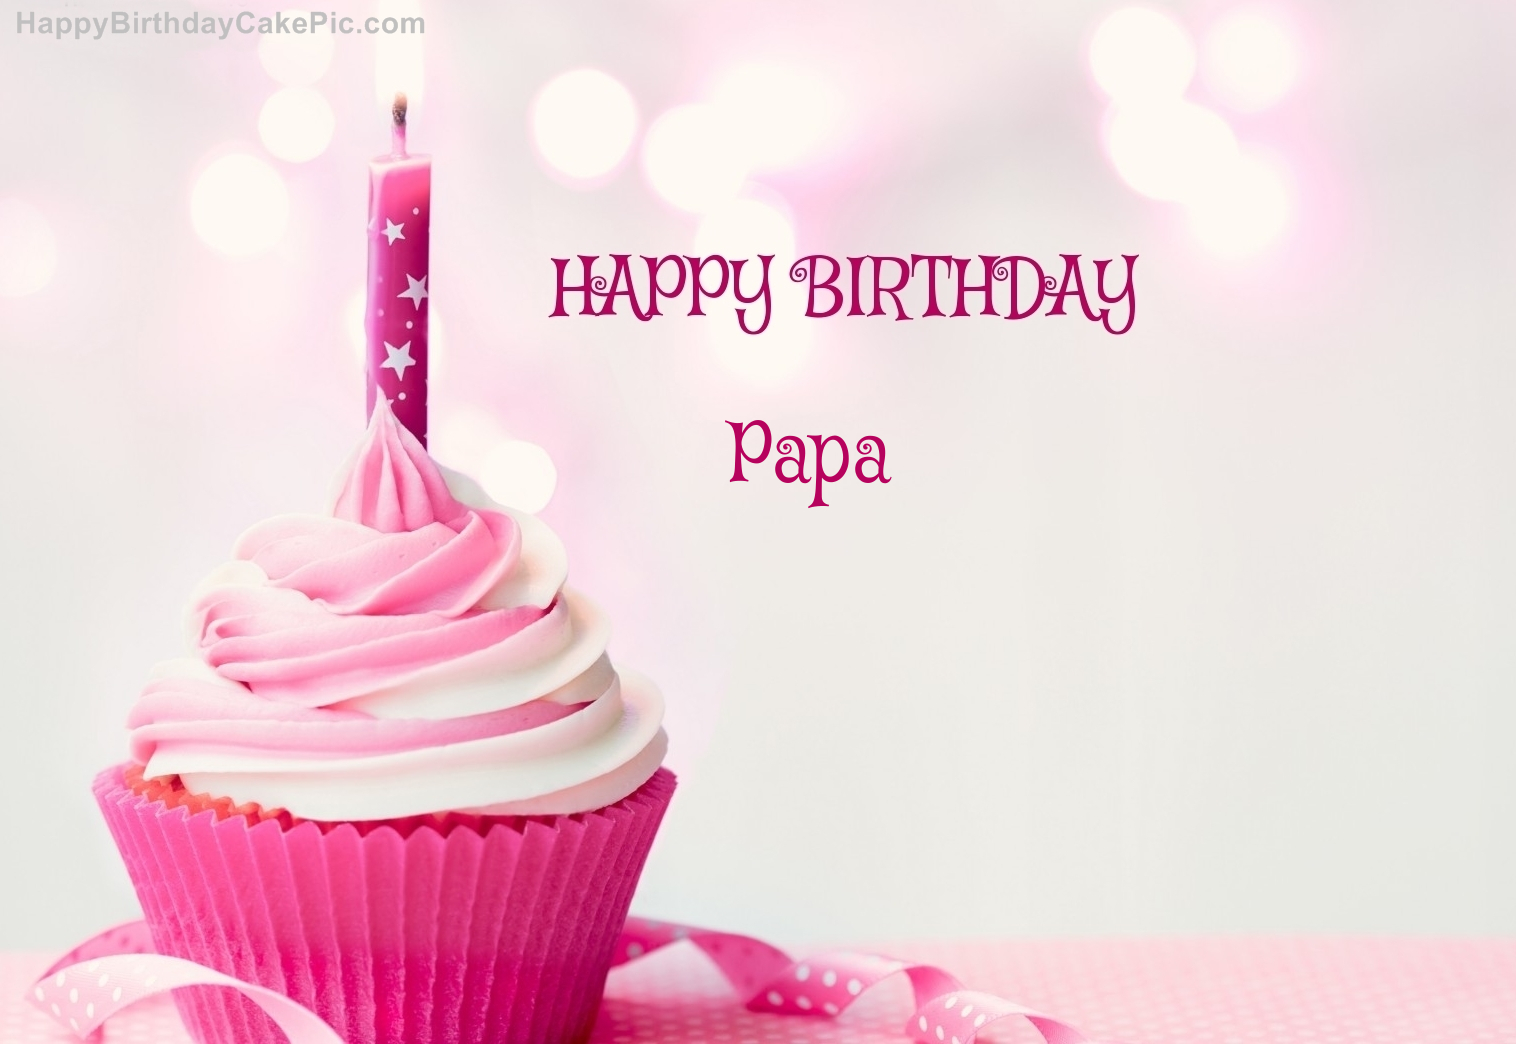 Birthday Cake Design For Papa : Happy Birthday Cupcake Candle Pink Cake For Papa